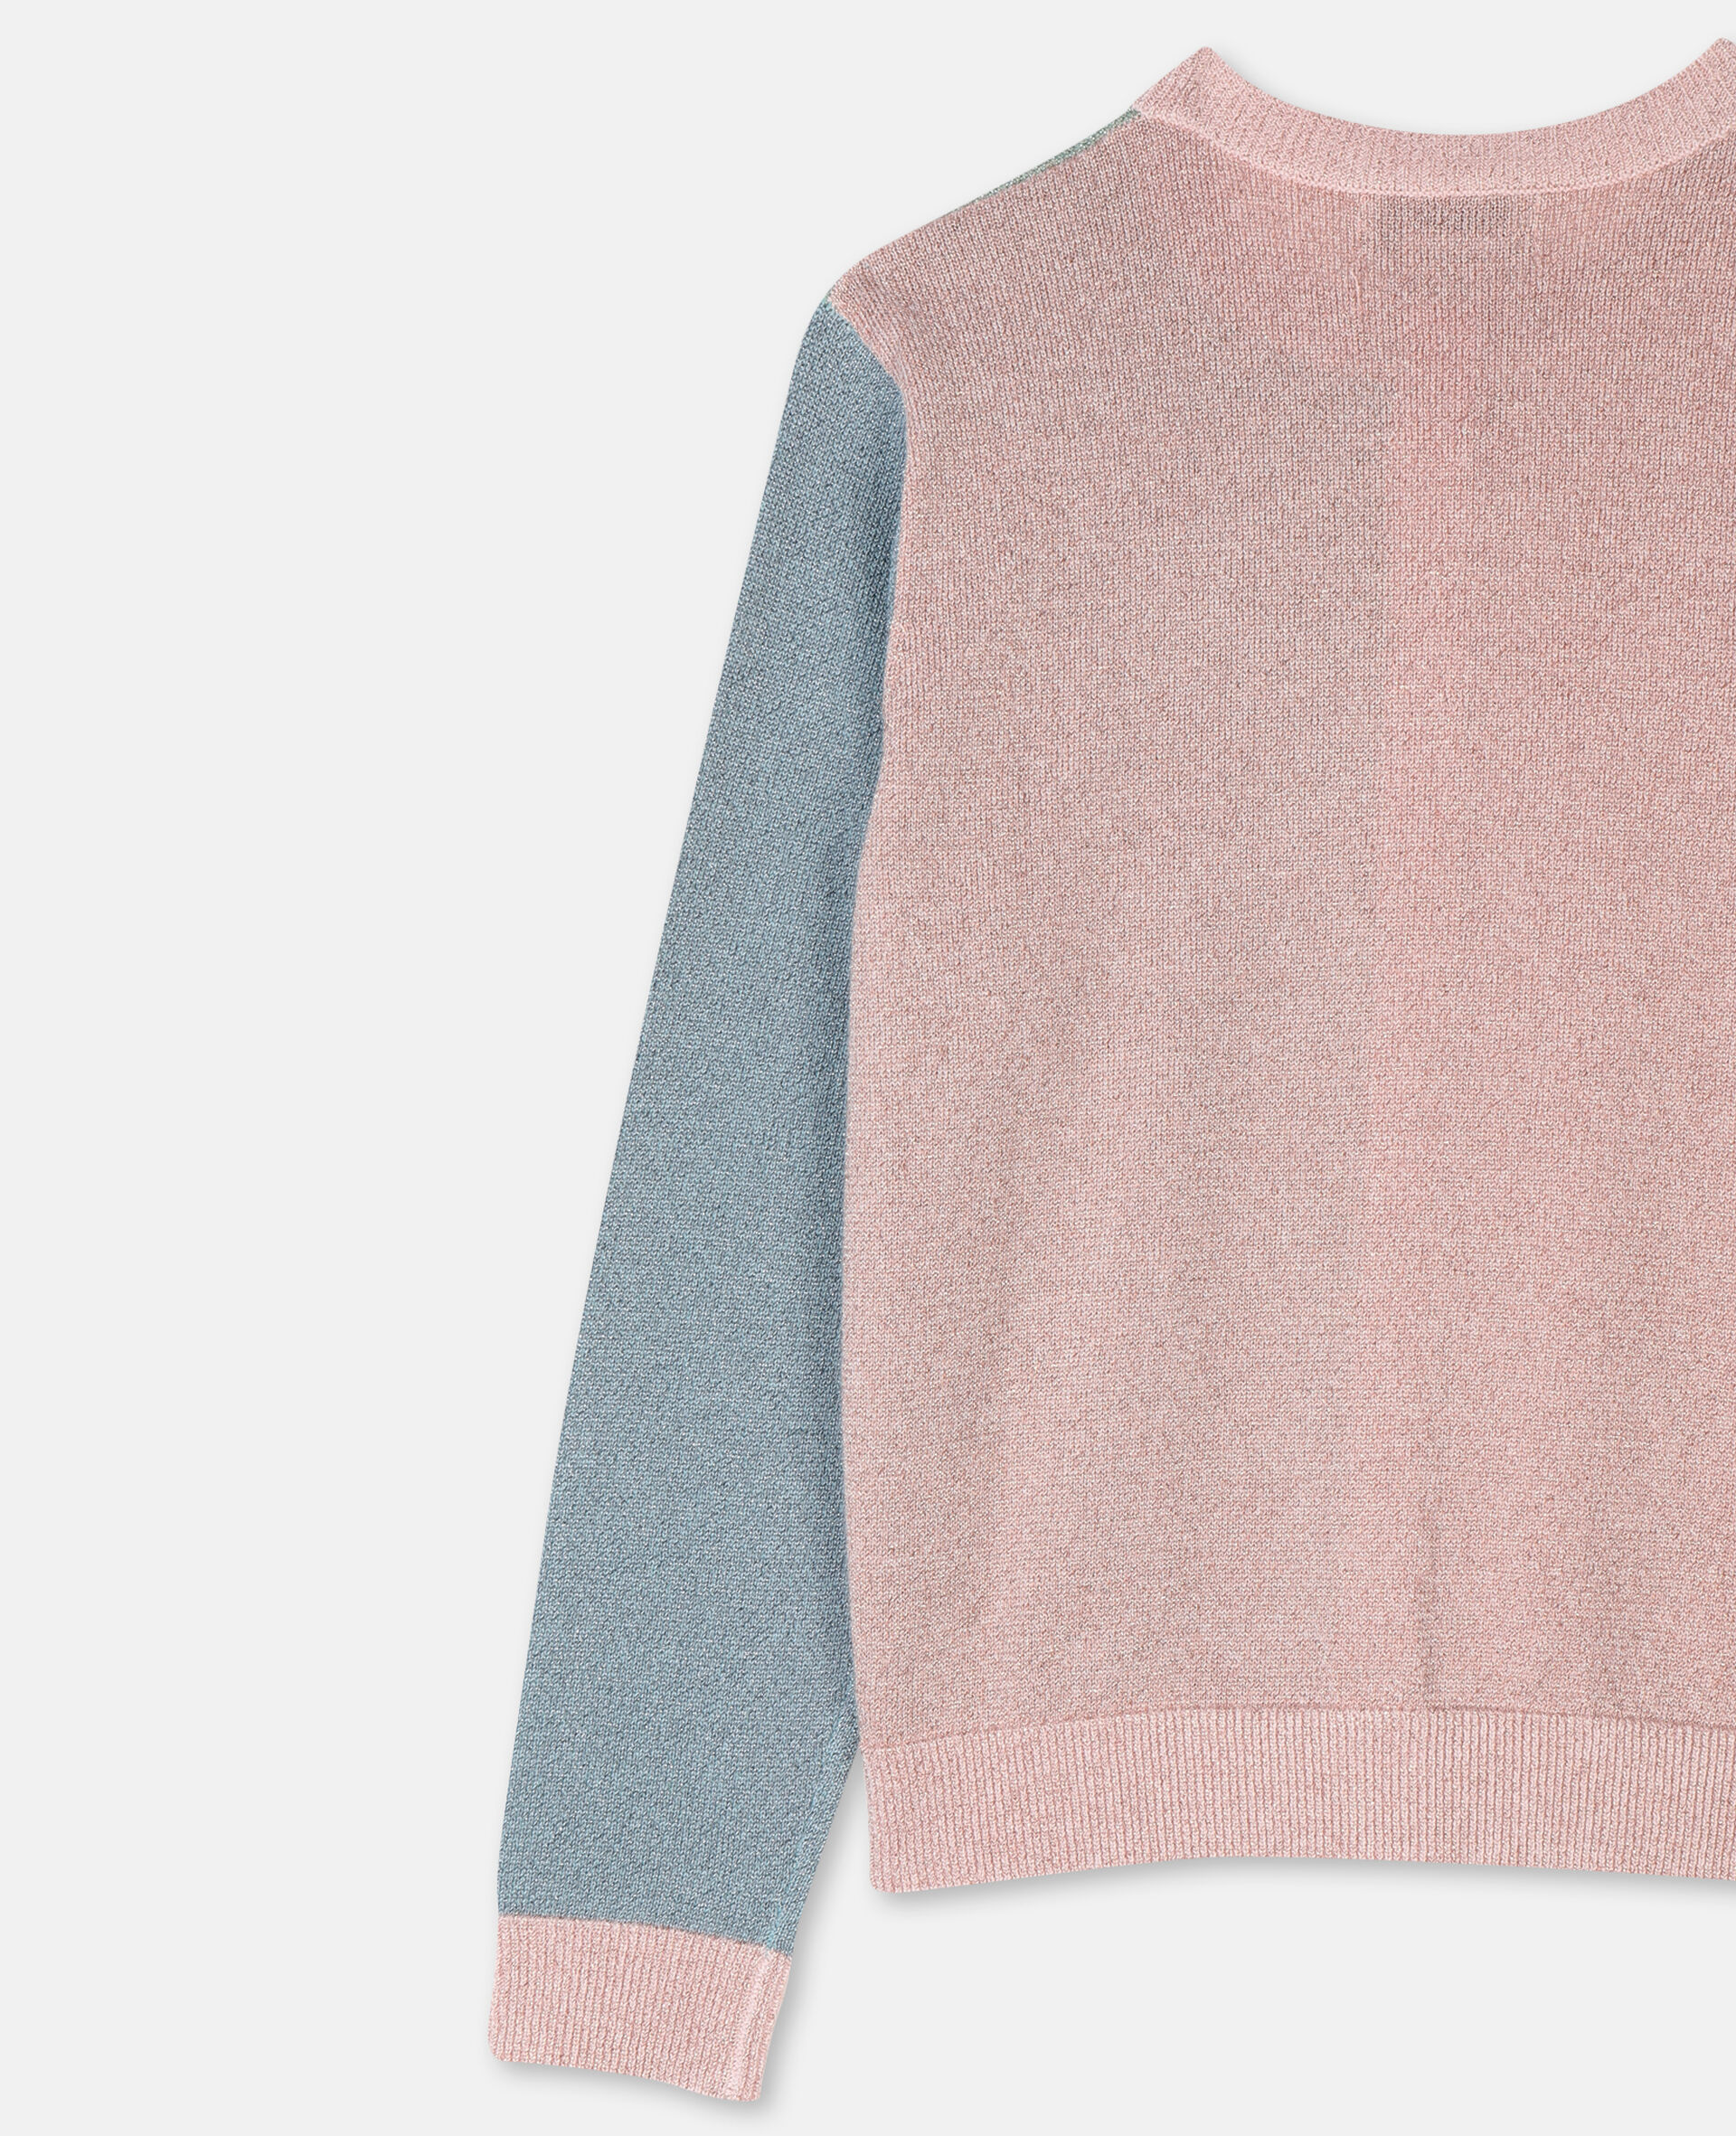 Multicolour Knit Cardigan -Pink-large image number 2